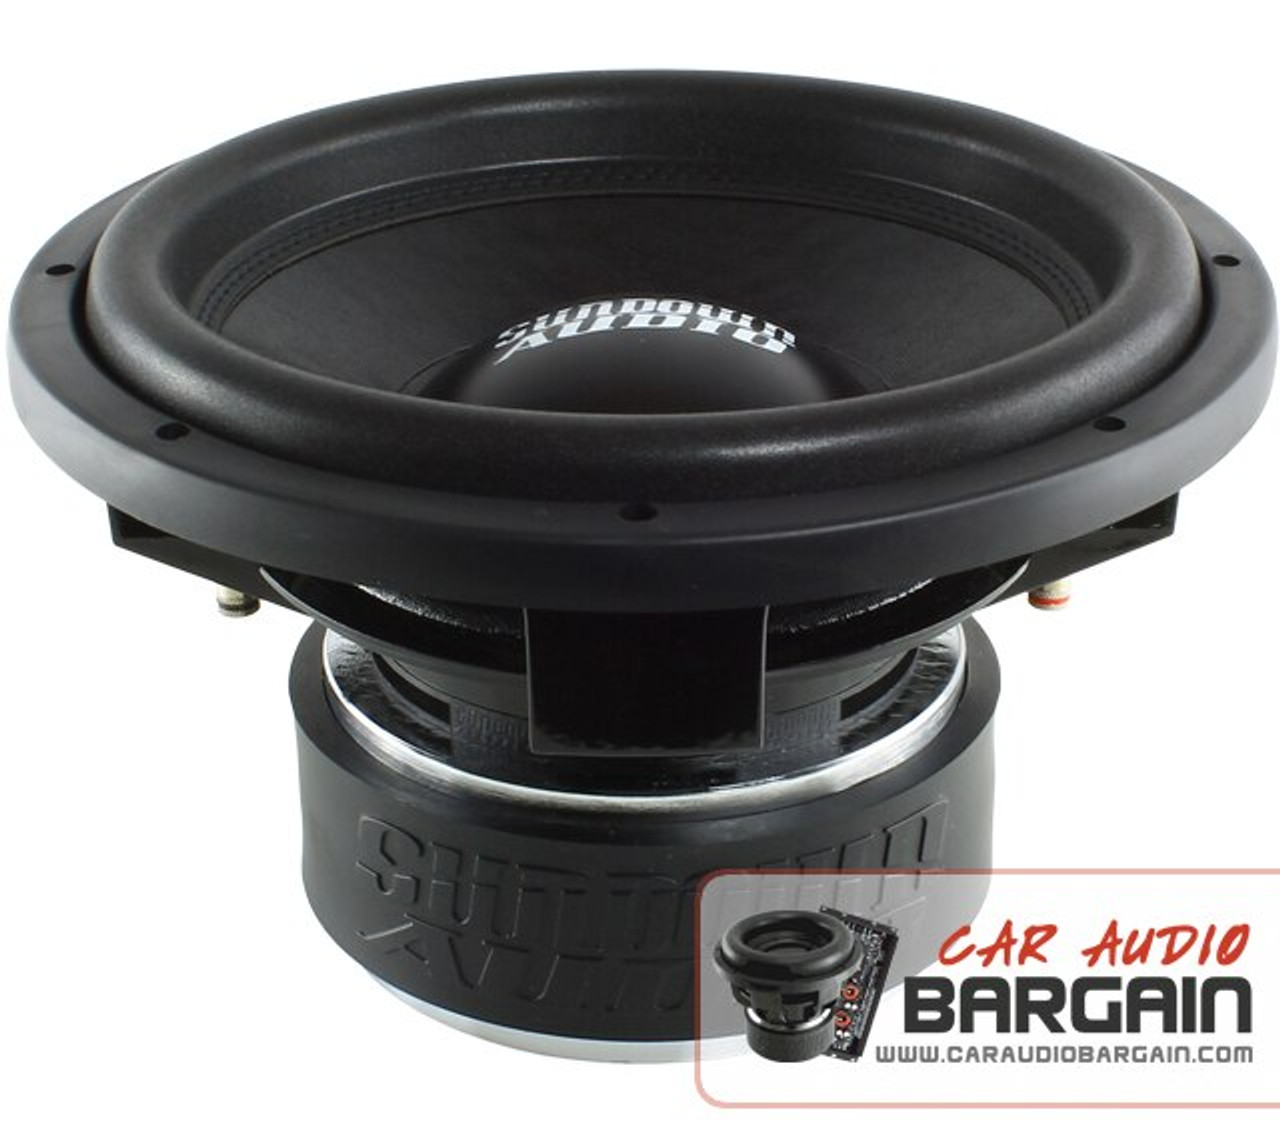 Budget Banger  Bass Package!  (2 subs and 1 amp)